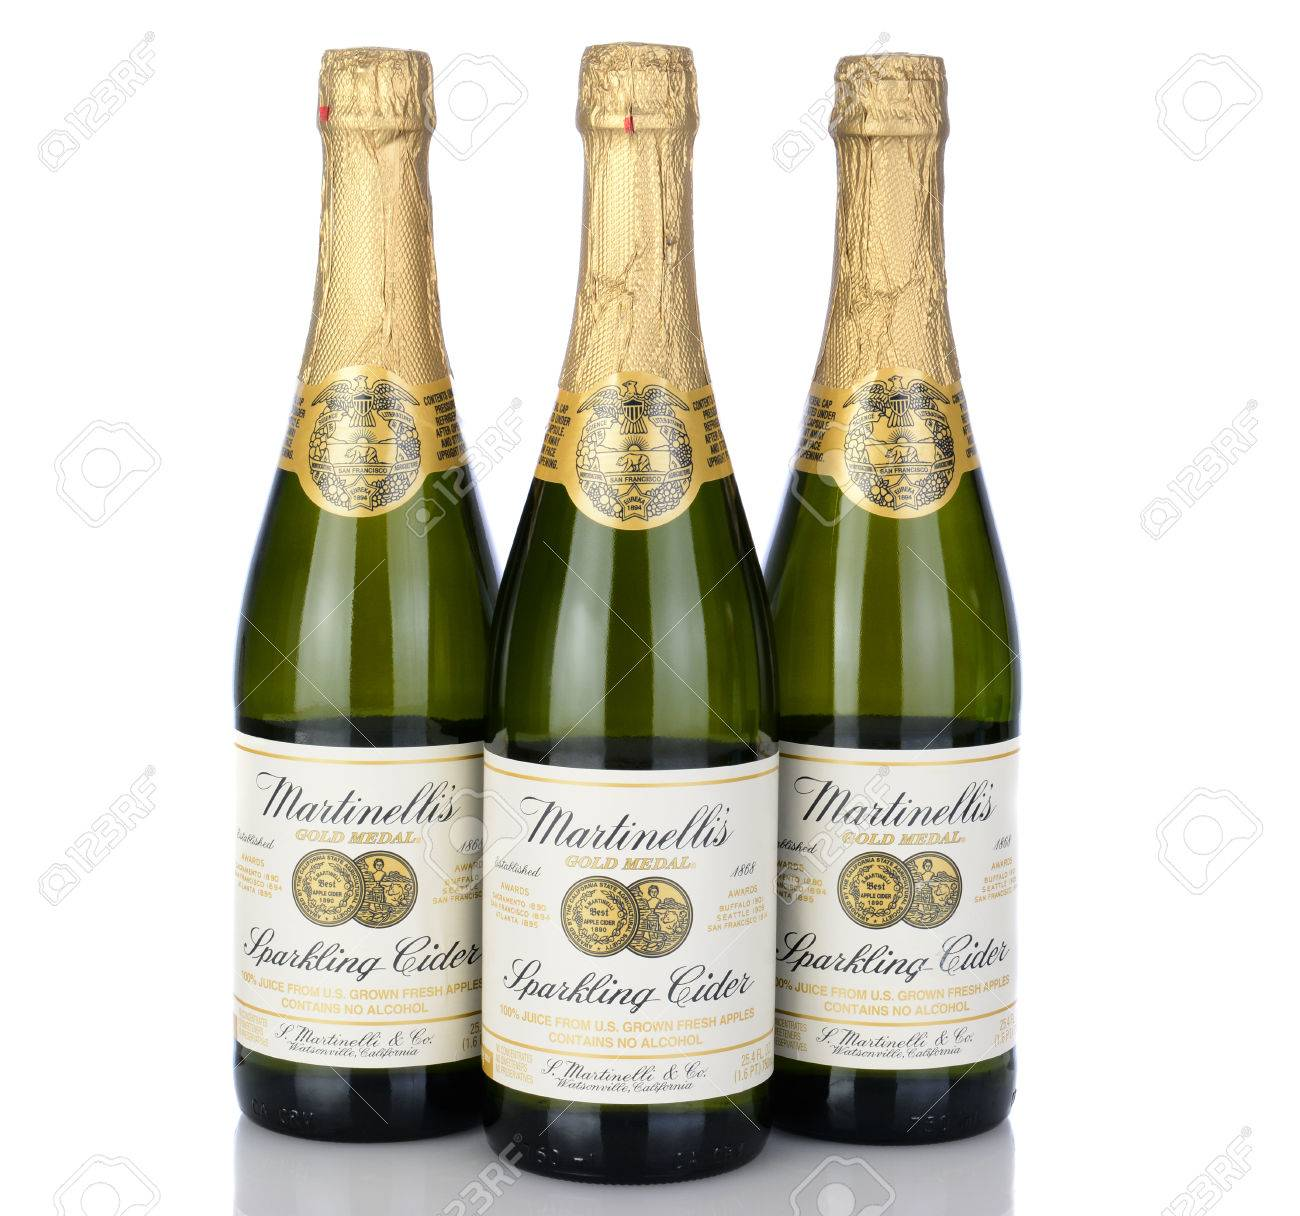 Irvine Ca January 05 2014 Photo Of A 3 25 4 Ounce Bottles Stock Photo Picture And Royalty Free Image Image 29098994